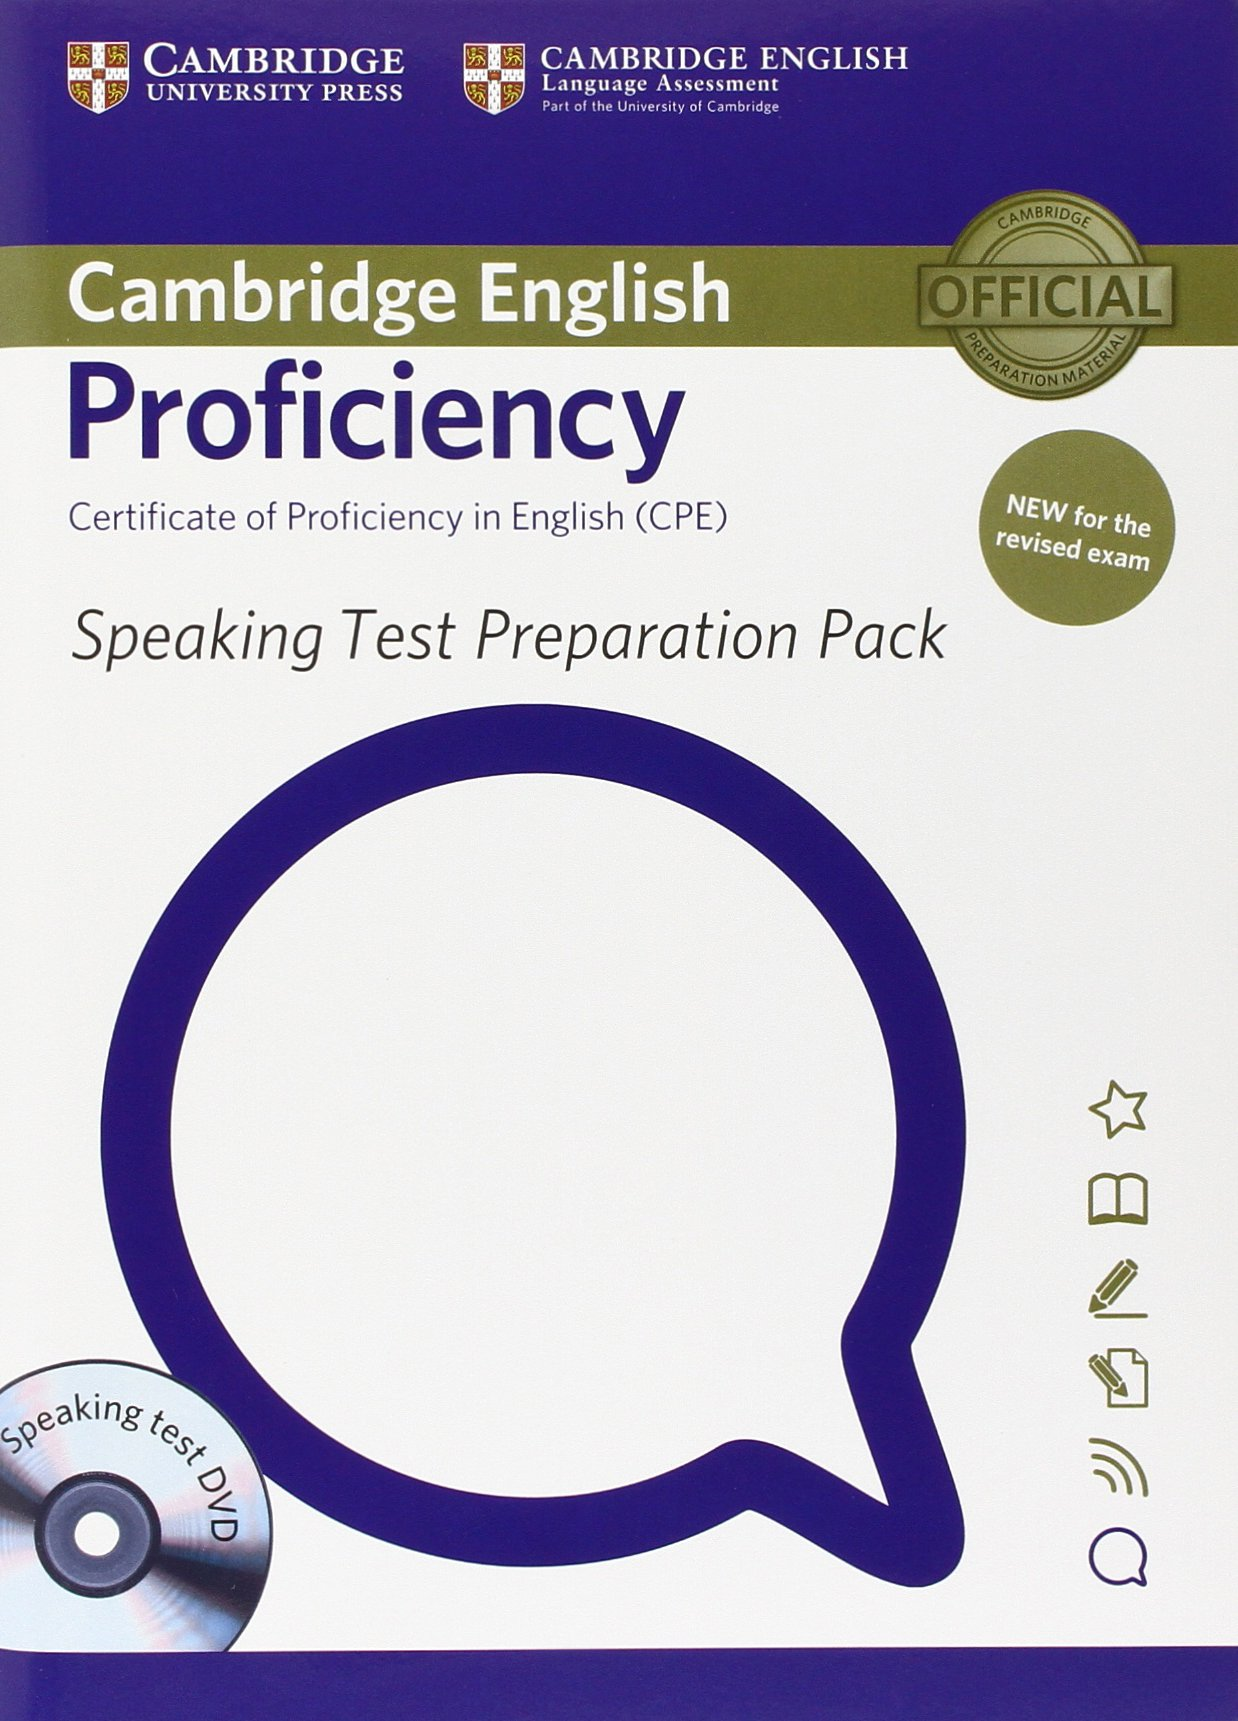 Speaking Test Preparation Pack for Proficiency - Book with DVD - Книга с DVD за подготовка за елемента